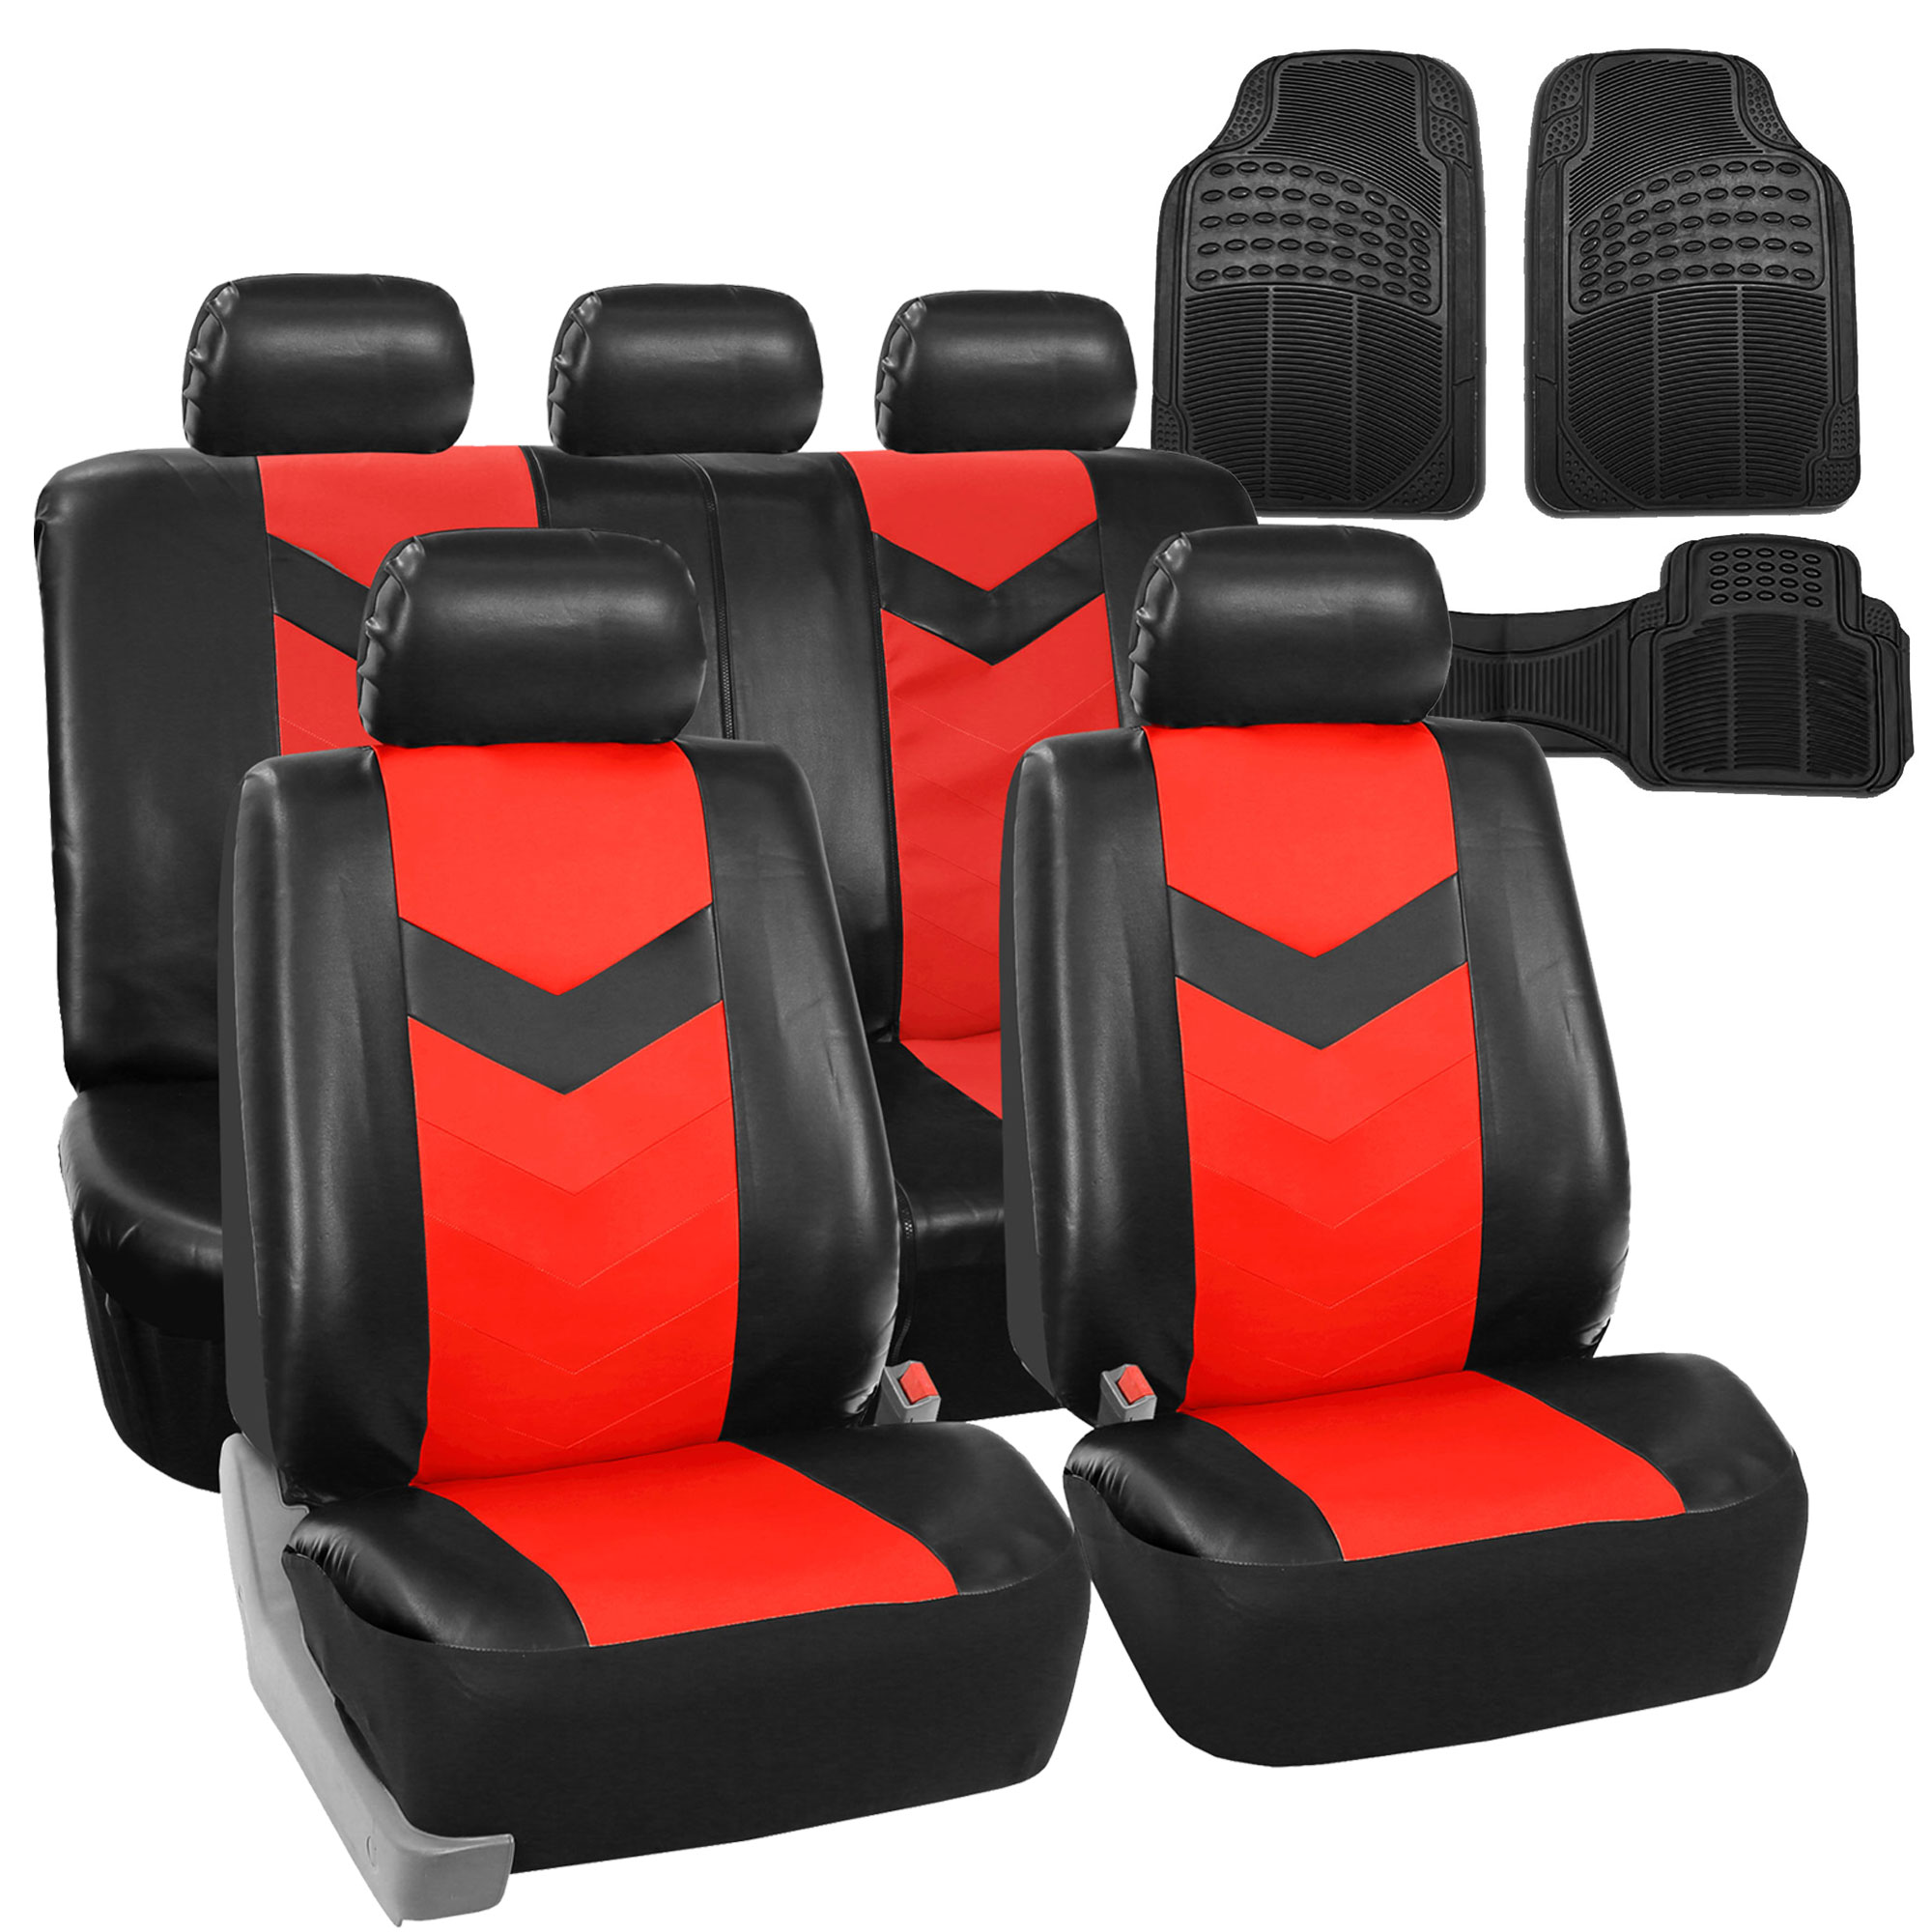 Rubber mats ebay - Faux Leather Car Seat Covers For Auto Red W Heavy Duty Floor Mats Ebay